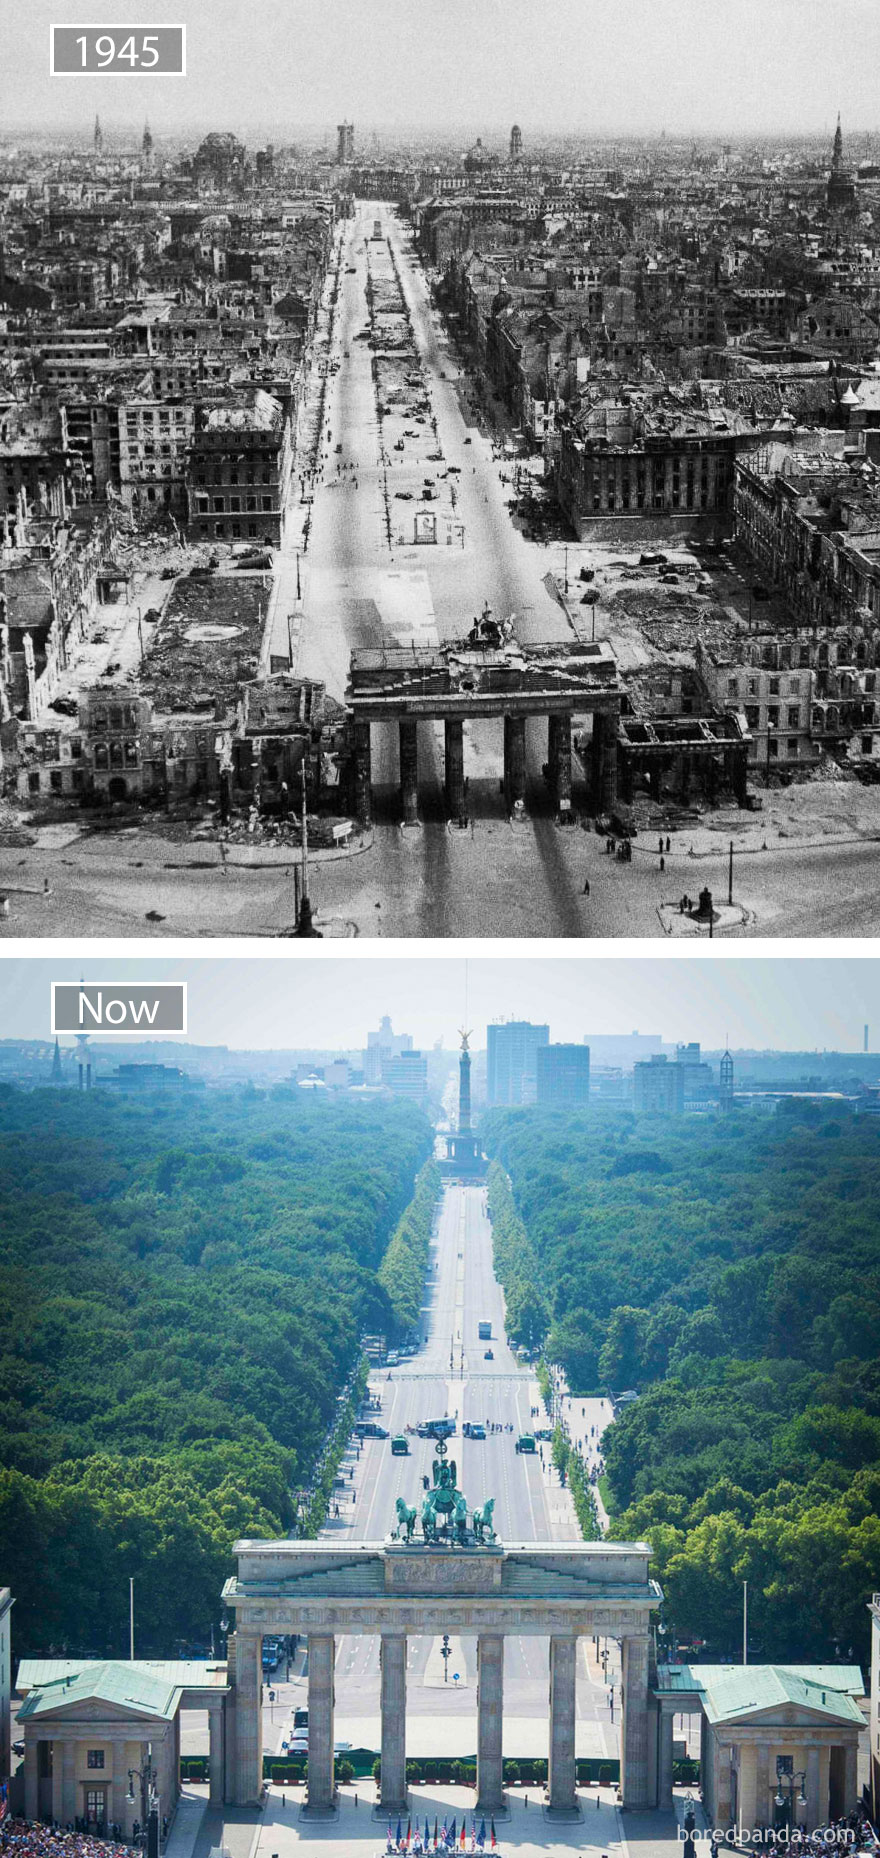 Berlin, Germany - 1945 And Now